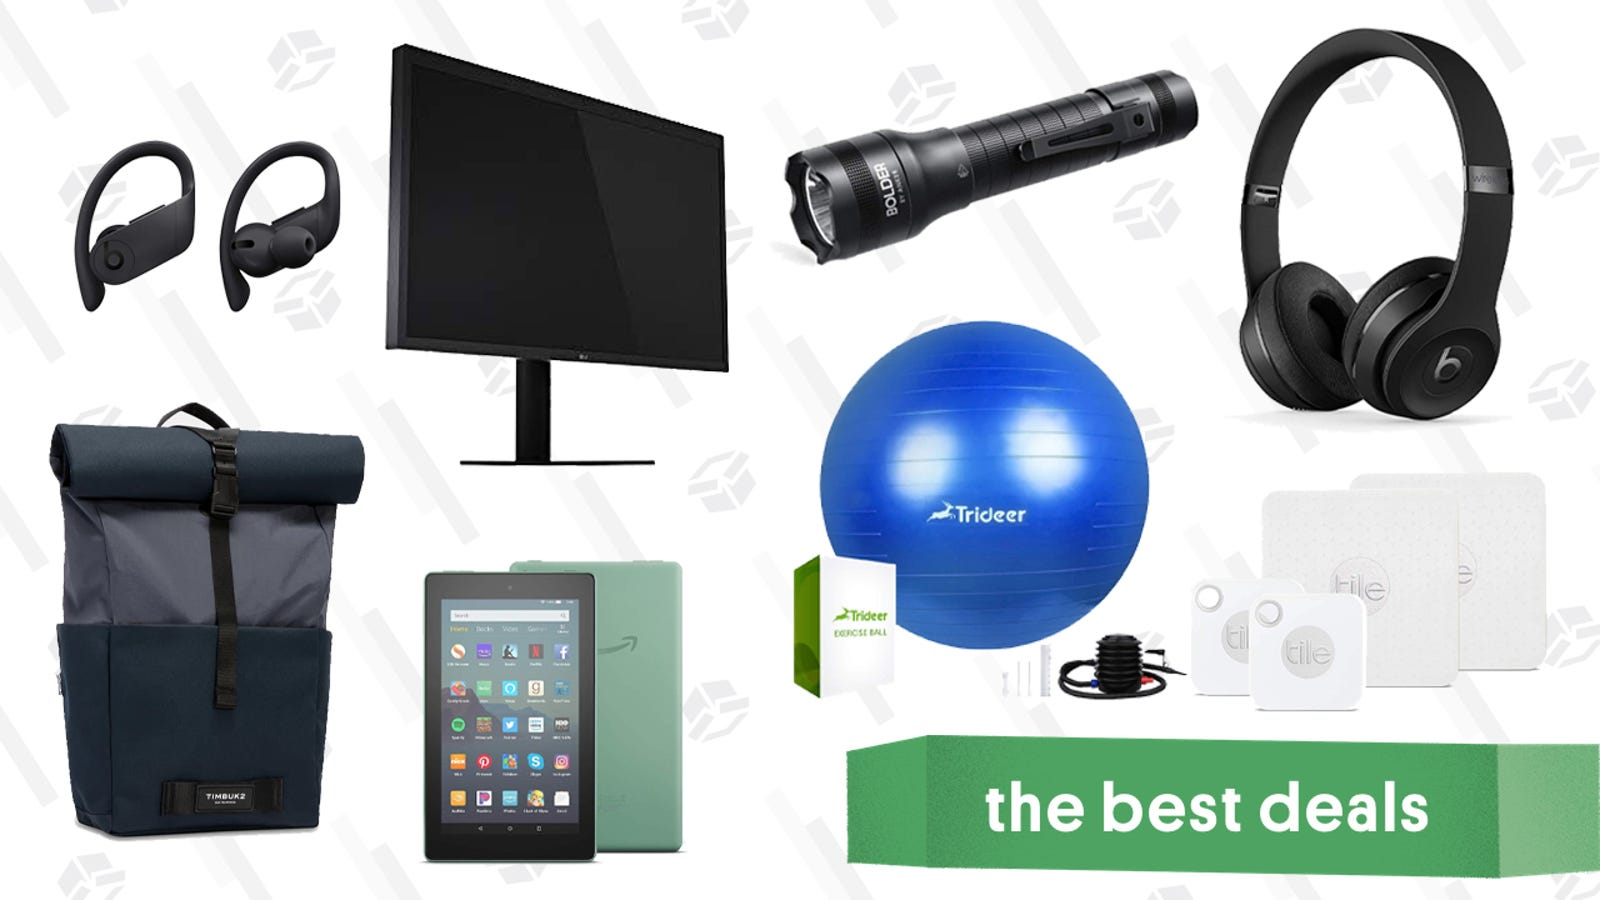 Monday's Best Deals: Apple Watch Series 5, Philips Norelco, Tile, and More